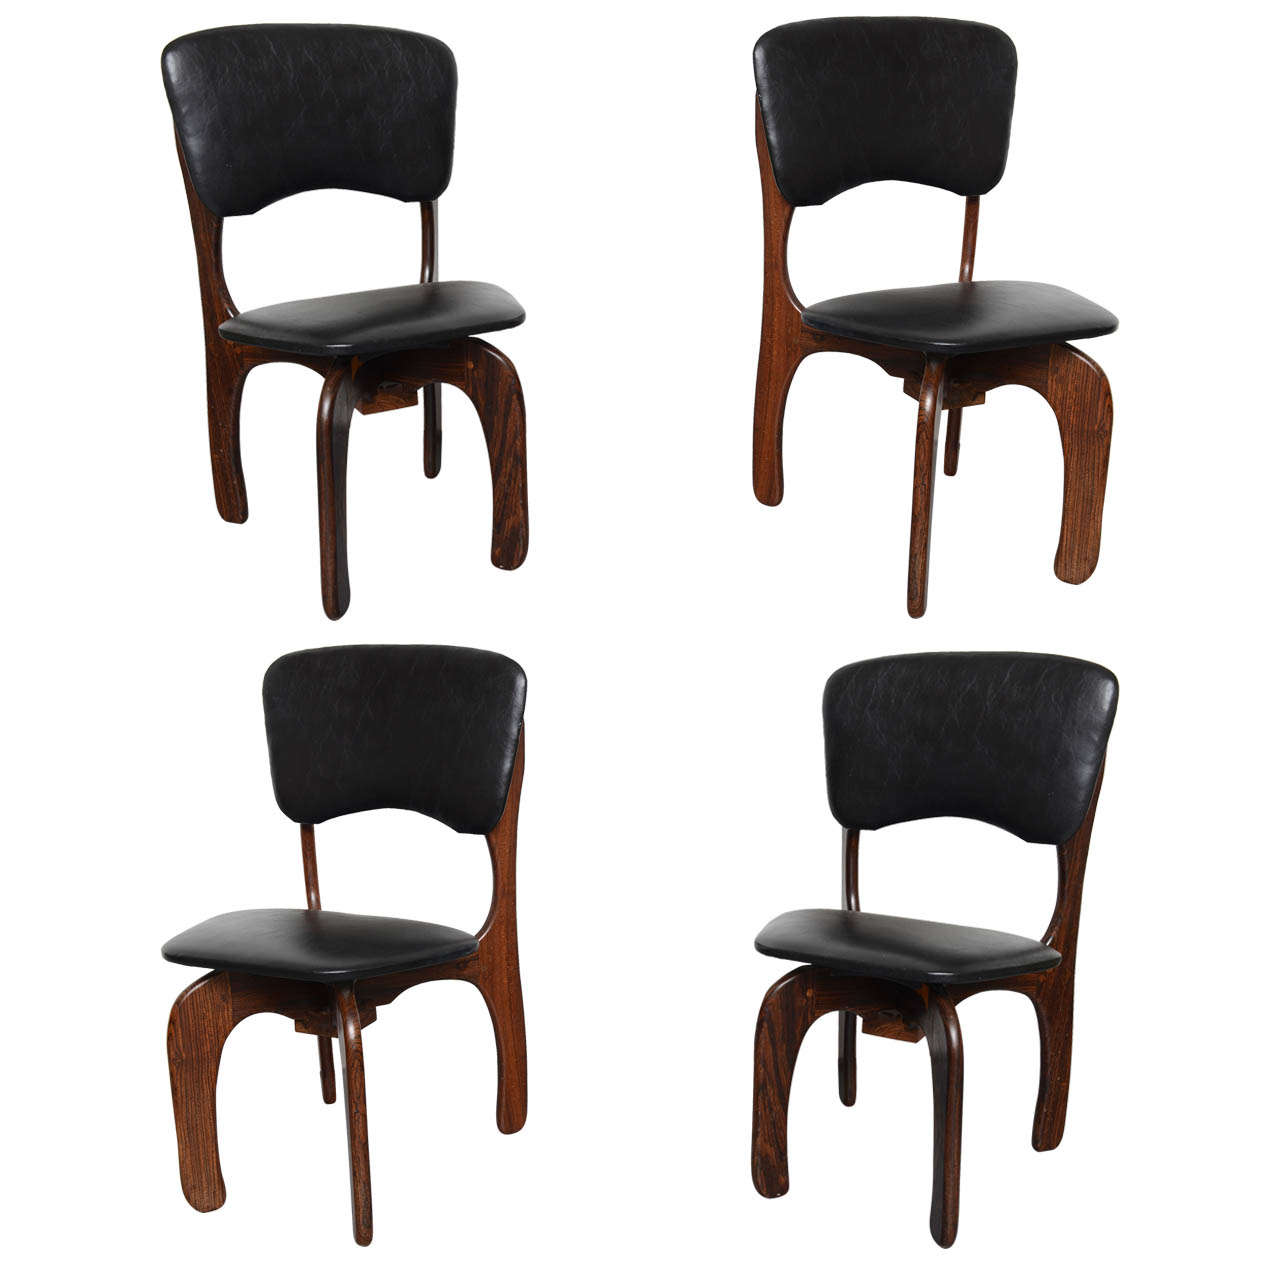 Viva Mexico Chair 1970s Rosewood Chairs By Don Shoemaker Mexico At 1stdibs